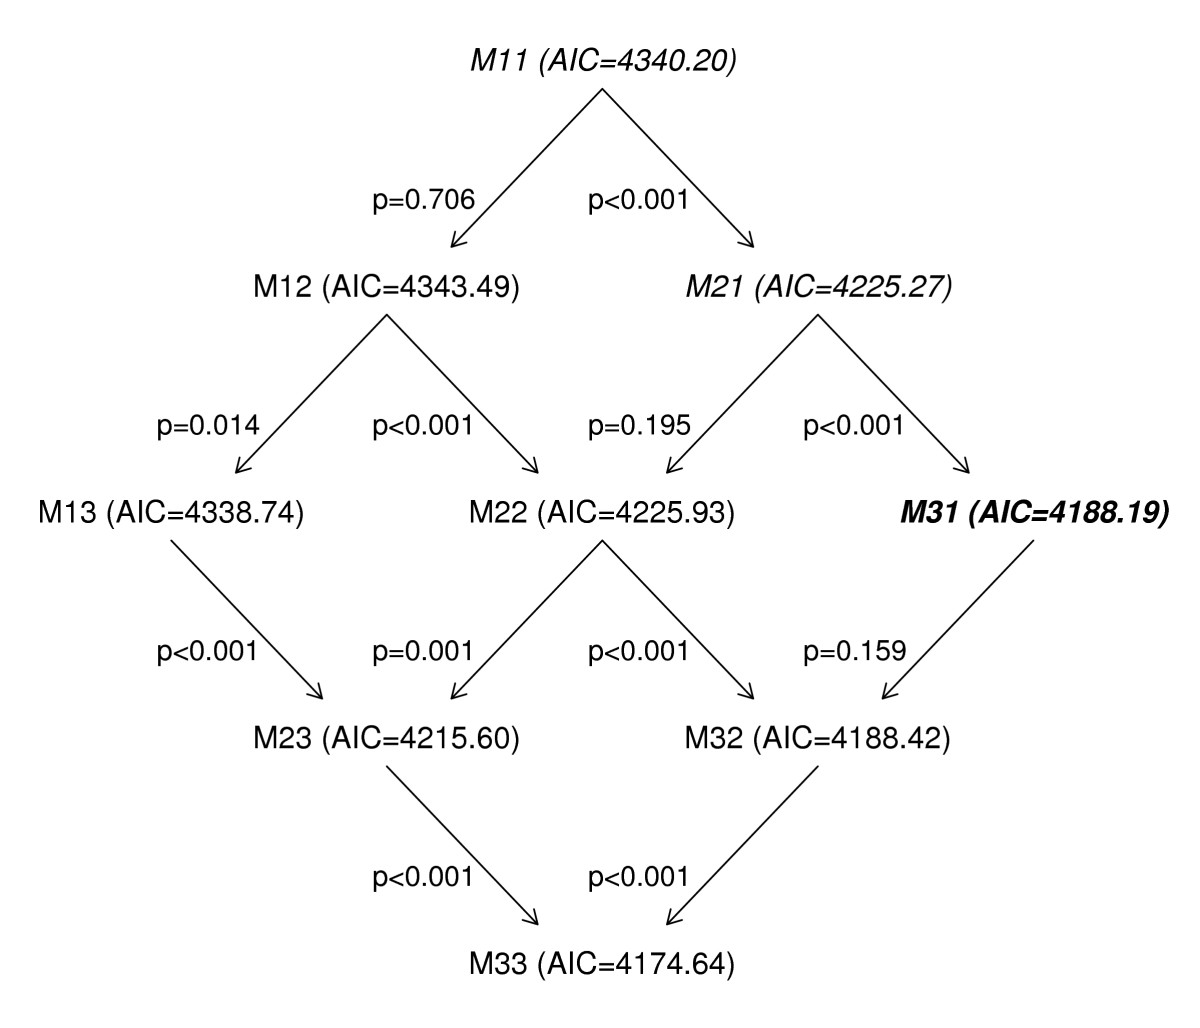 https://static-content.springer.com/image/art%3A10.1186%2F1472-6947-7-29/MediaObjects/12911_2007_Article_160_Fig1_HTML.jpg